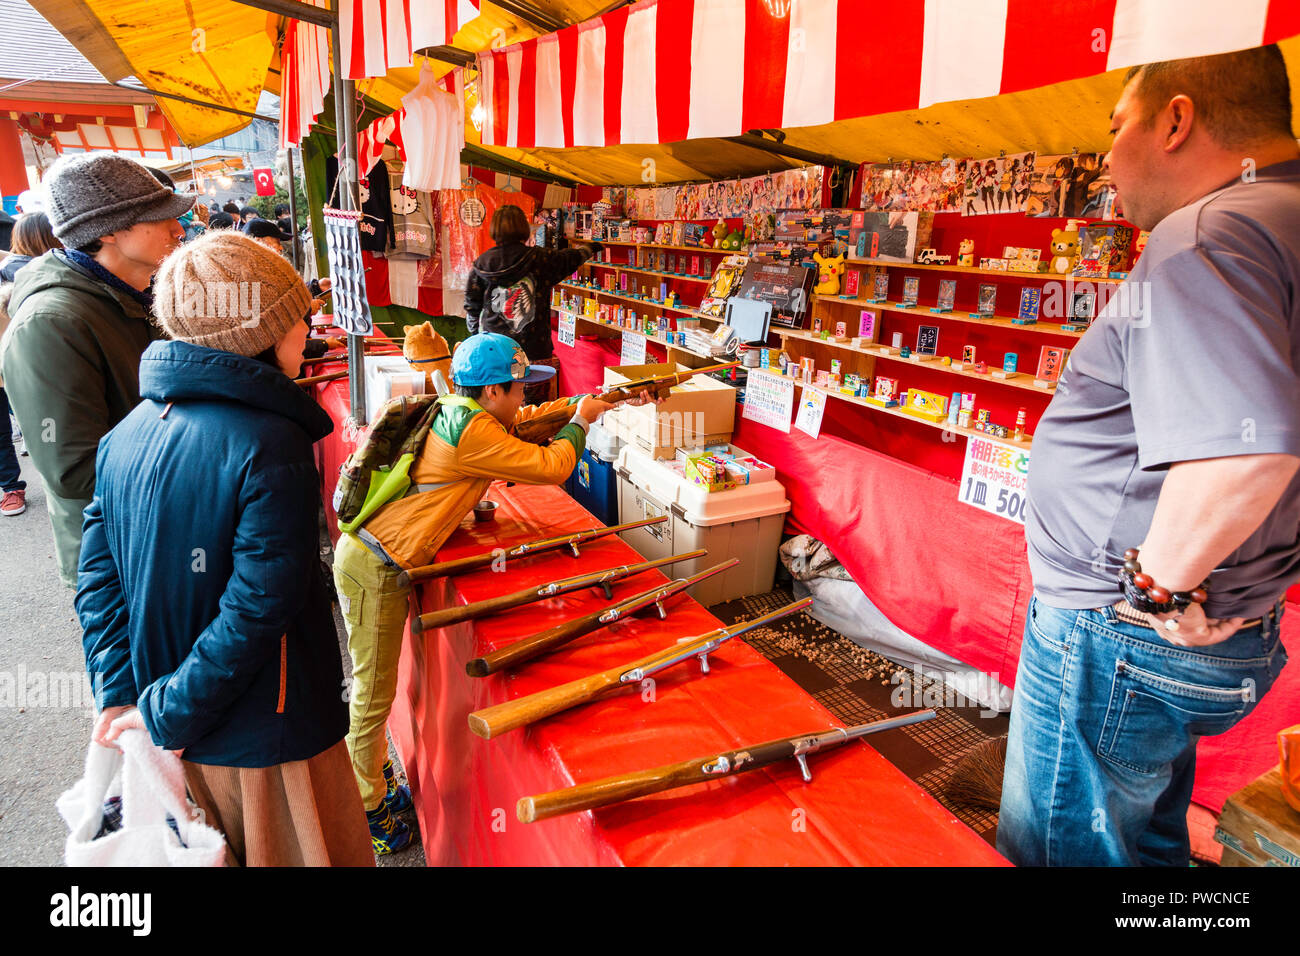 Japanese children's shooting gallery at stall during festival. Boy learning over counter holding rifle in both hands taking aim at target. - Stock Image